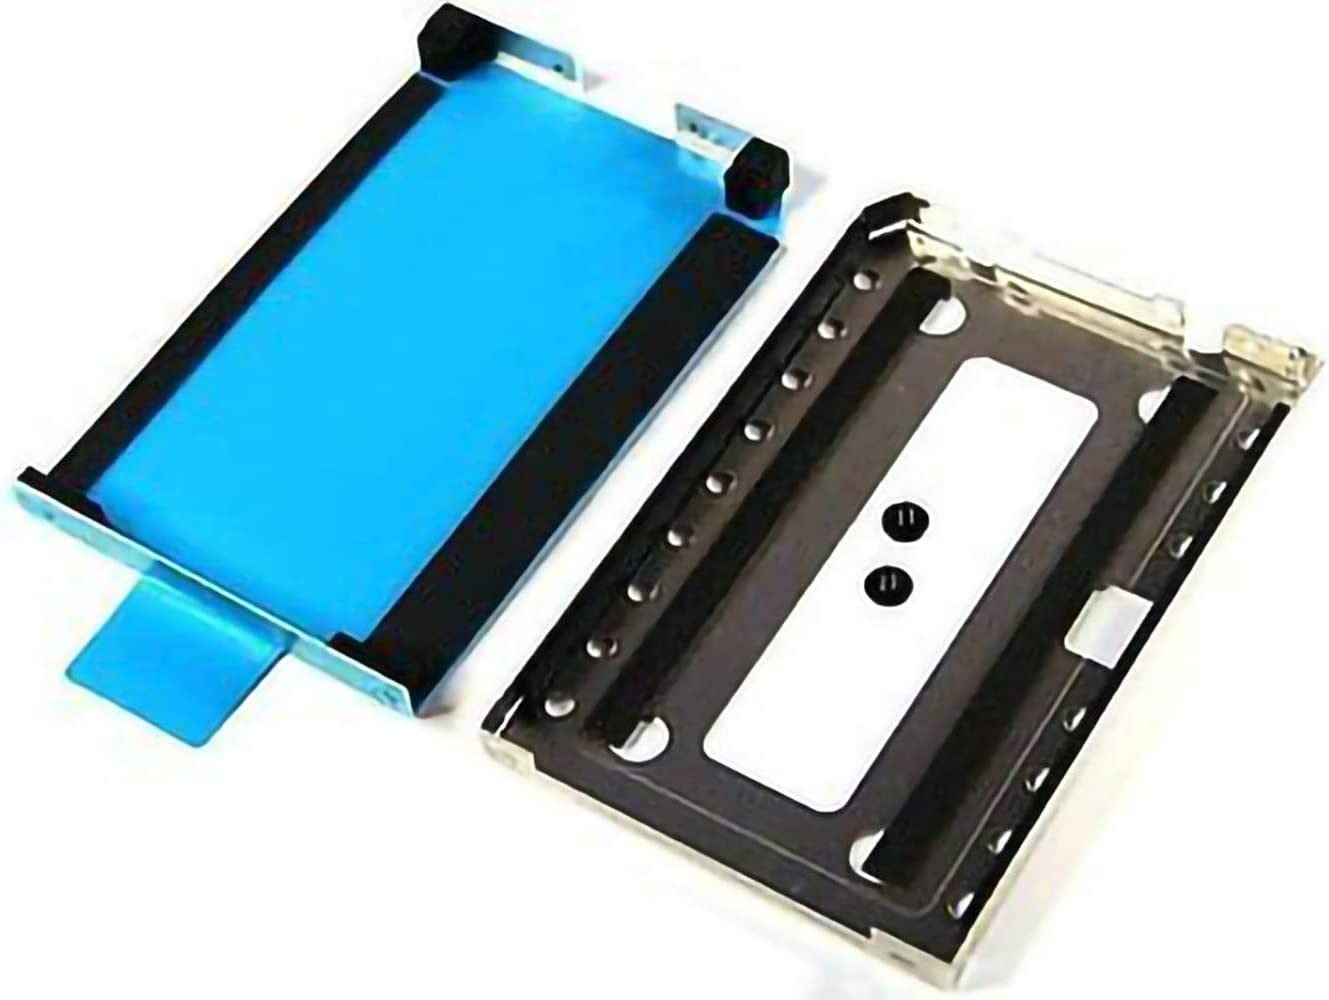 Hard Drive Caddy, Strong and Durable 4RCRG, Not Easy to Deform Hard Drive Caddy, for Dell 4RCRG M.2 SSD Carriage Assembly Hard Drive Caddy